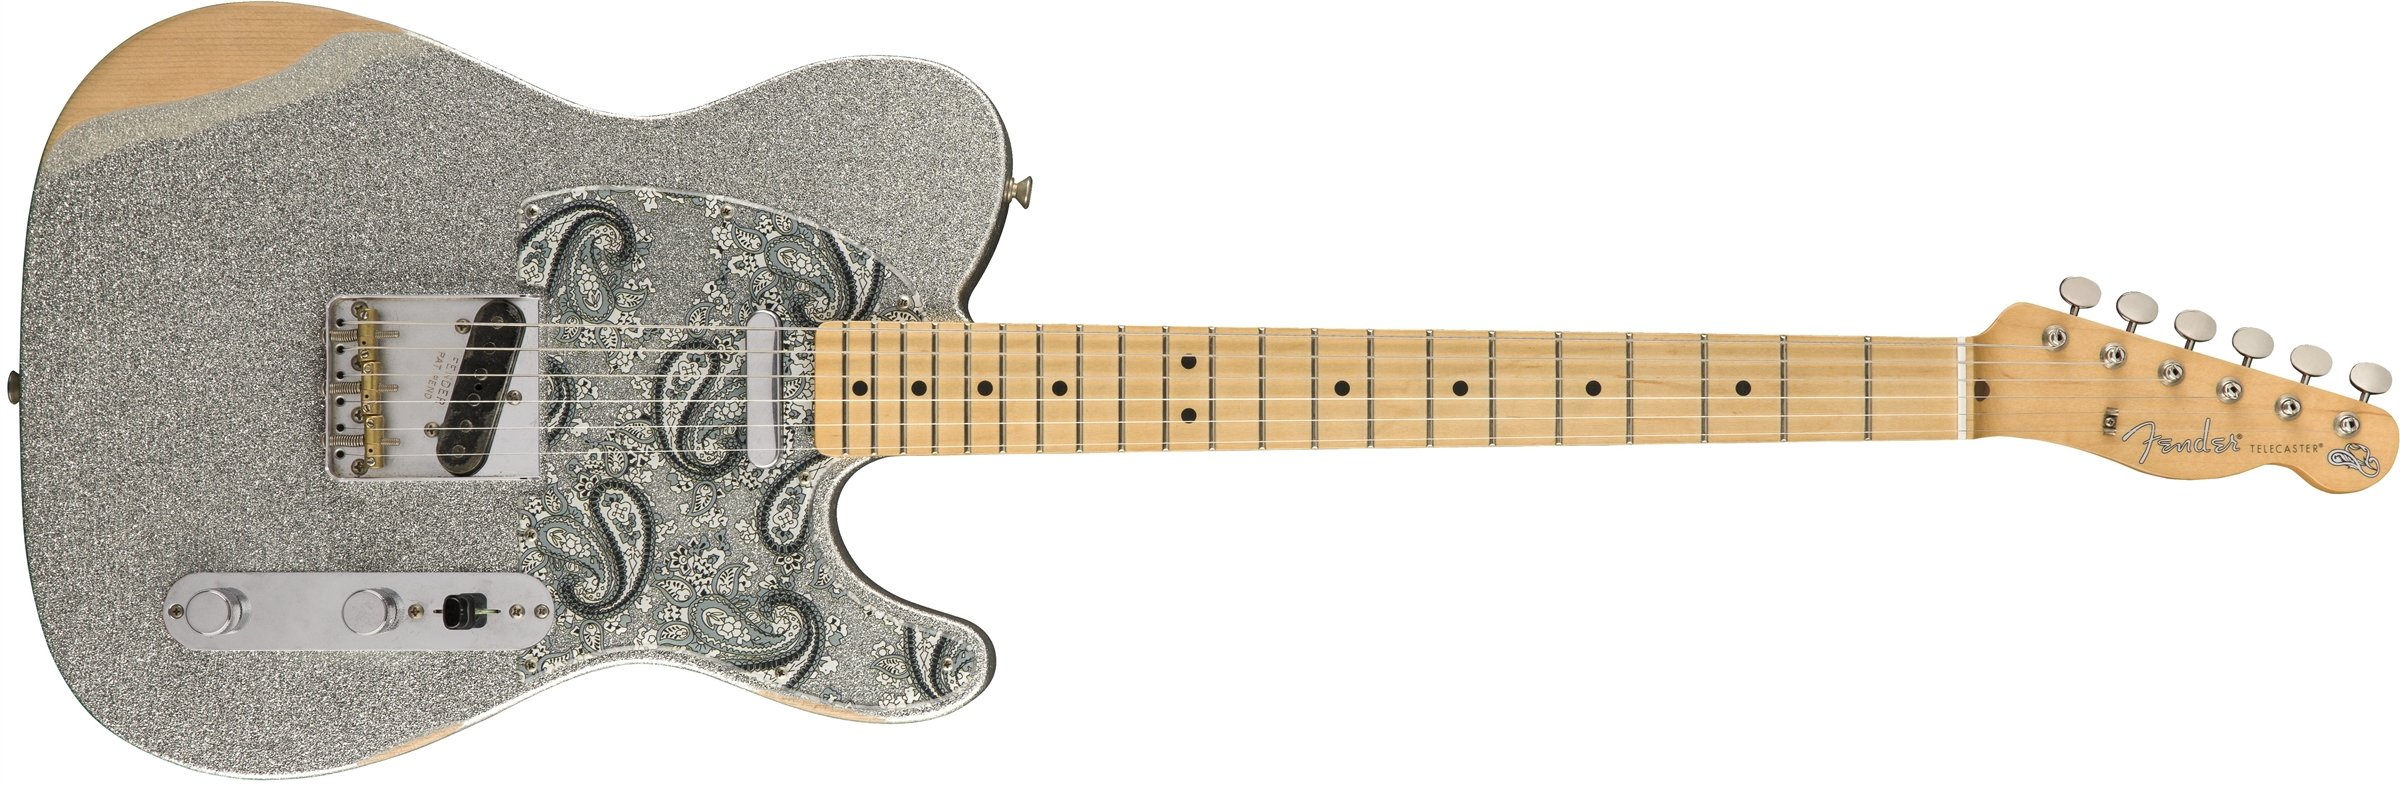 Cheap Fender Brad Paisley Road Worn Telecaster Electric Guitar - Maple Fingerboard - Silver Sparkle Black Friday & Cyber Monday 2019